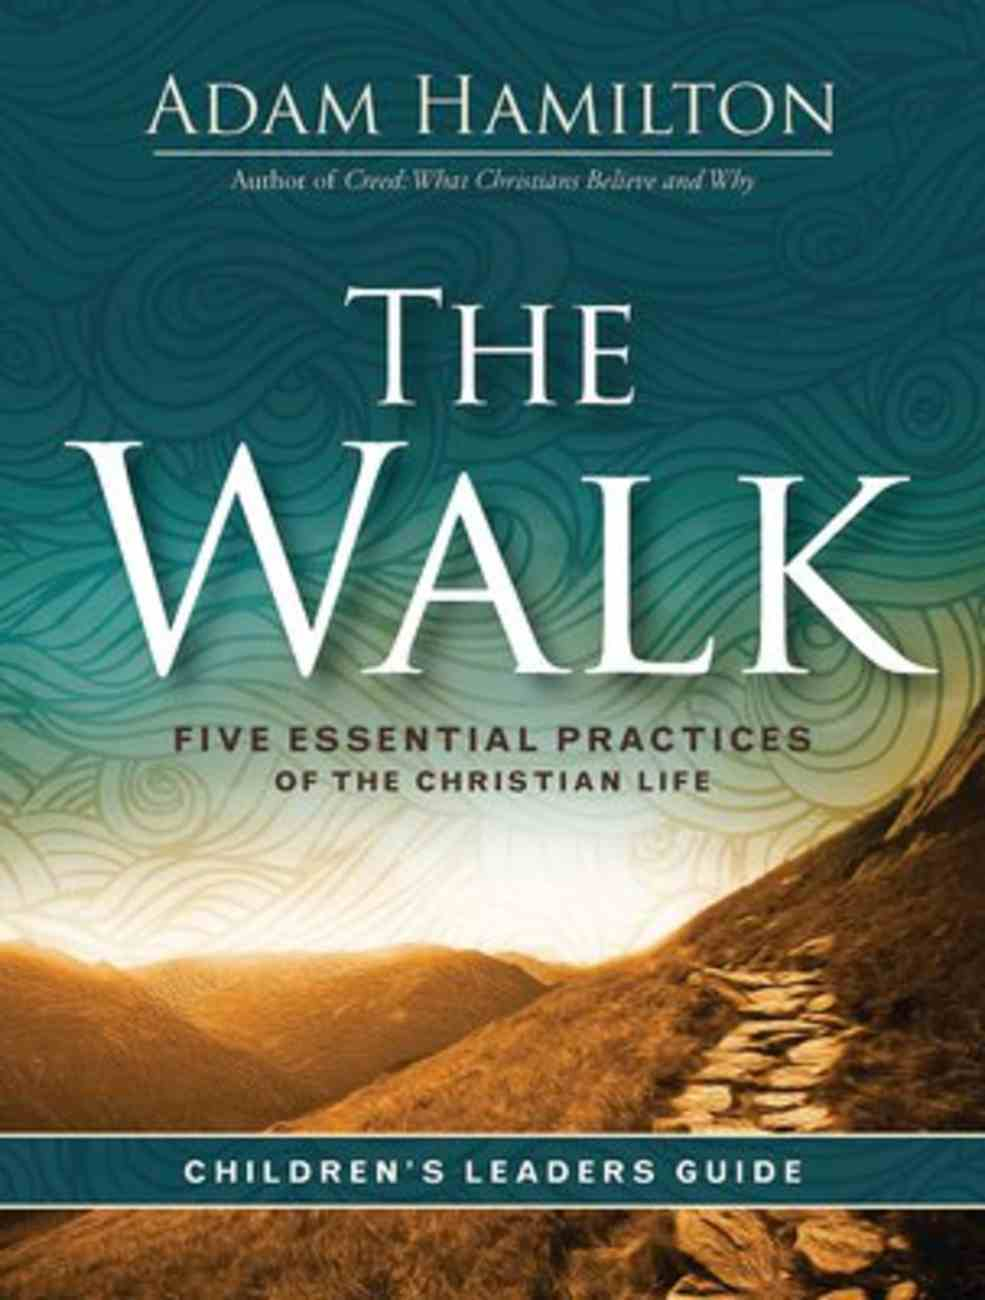 The Walk: Five Essential Practices of the Christian Life (Children's Leader Guide) Paperback